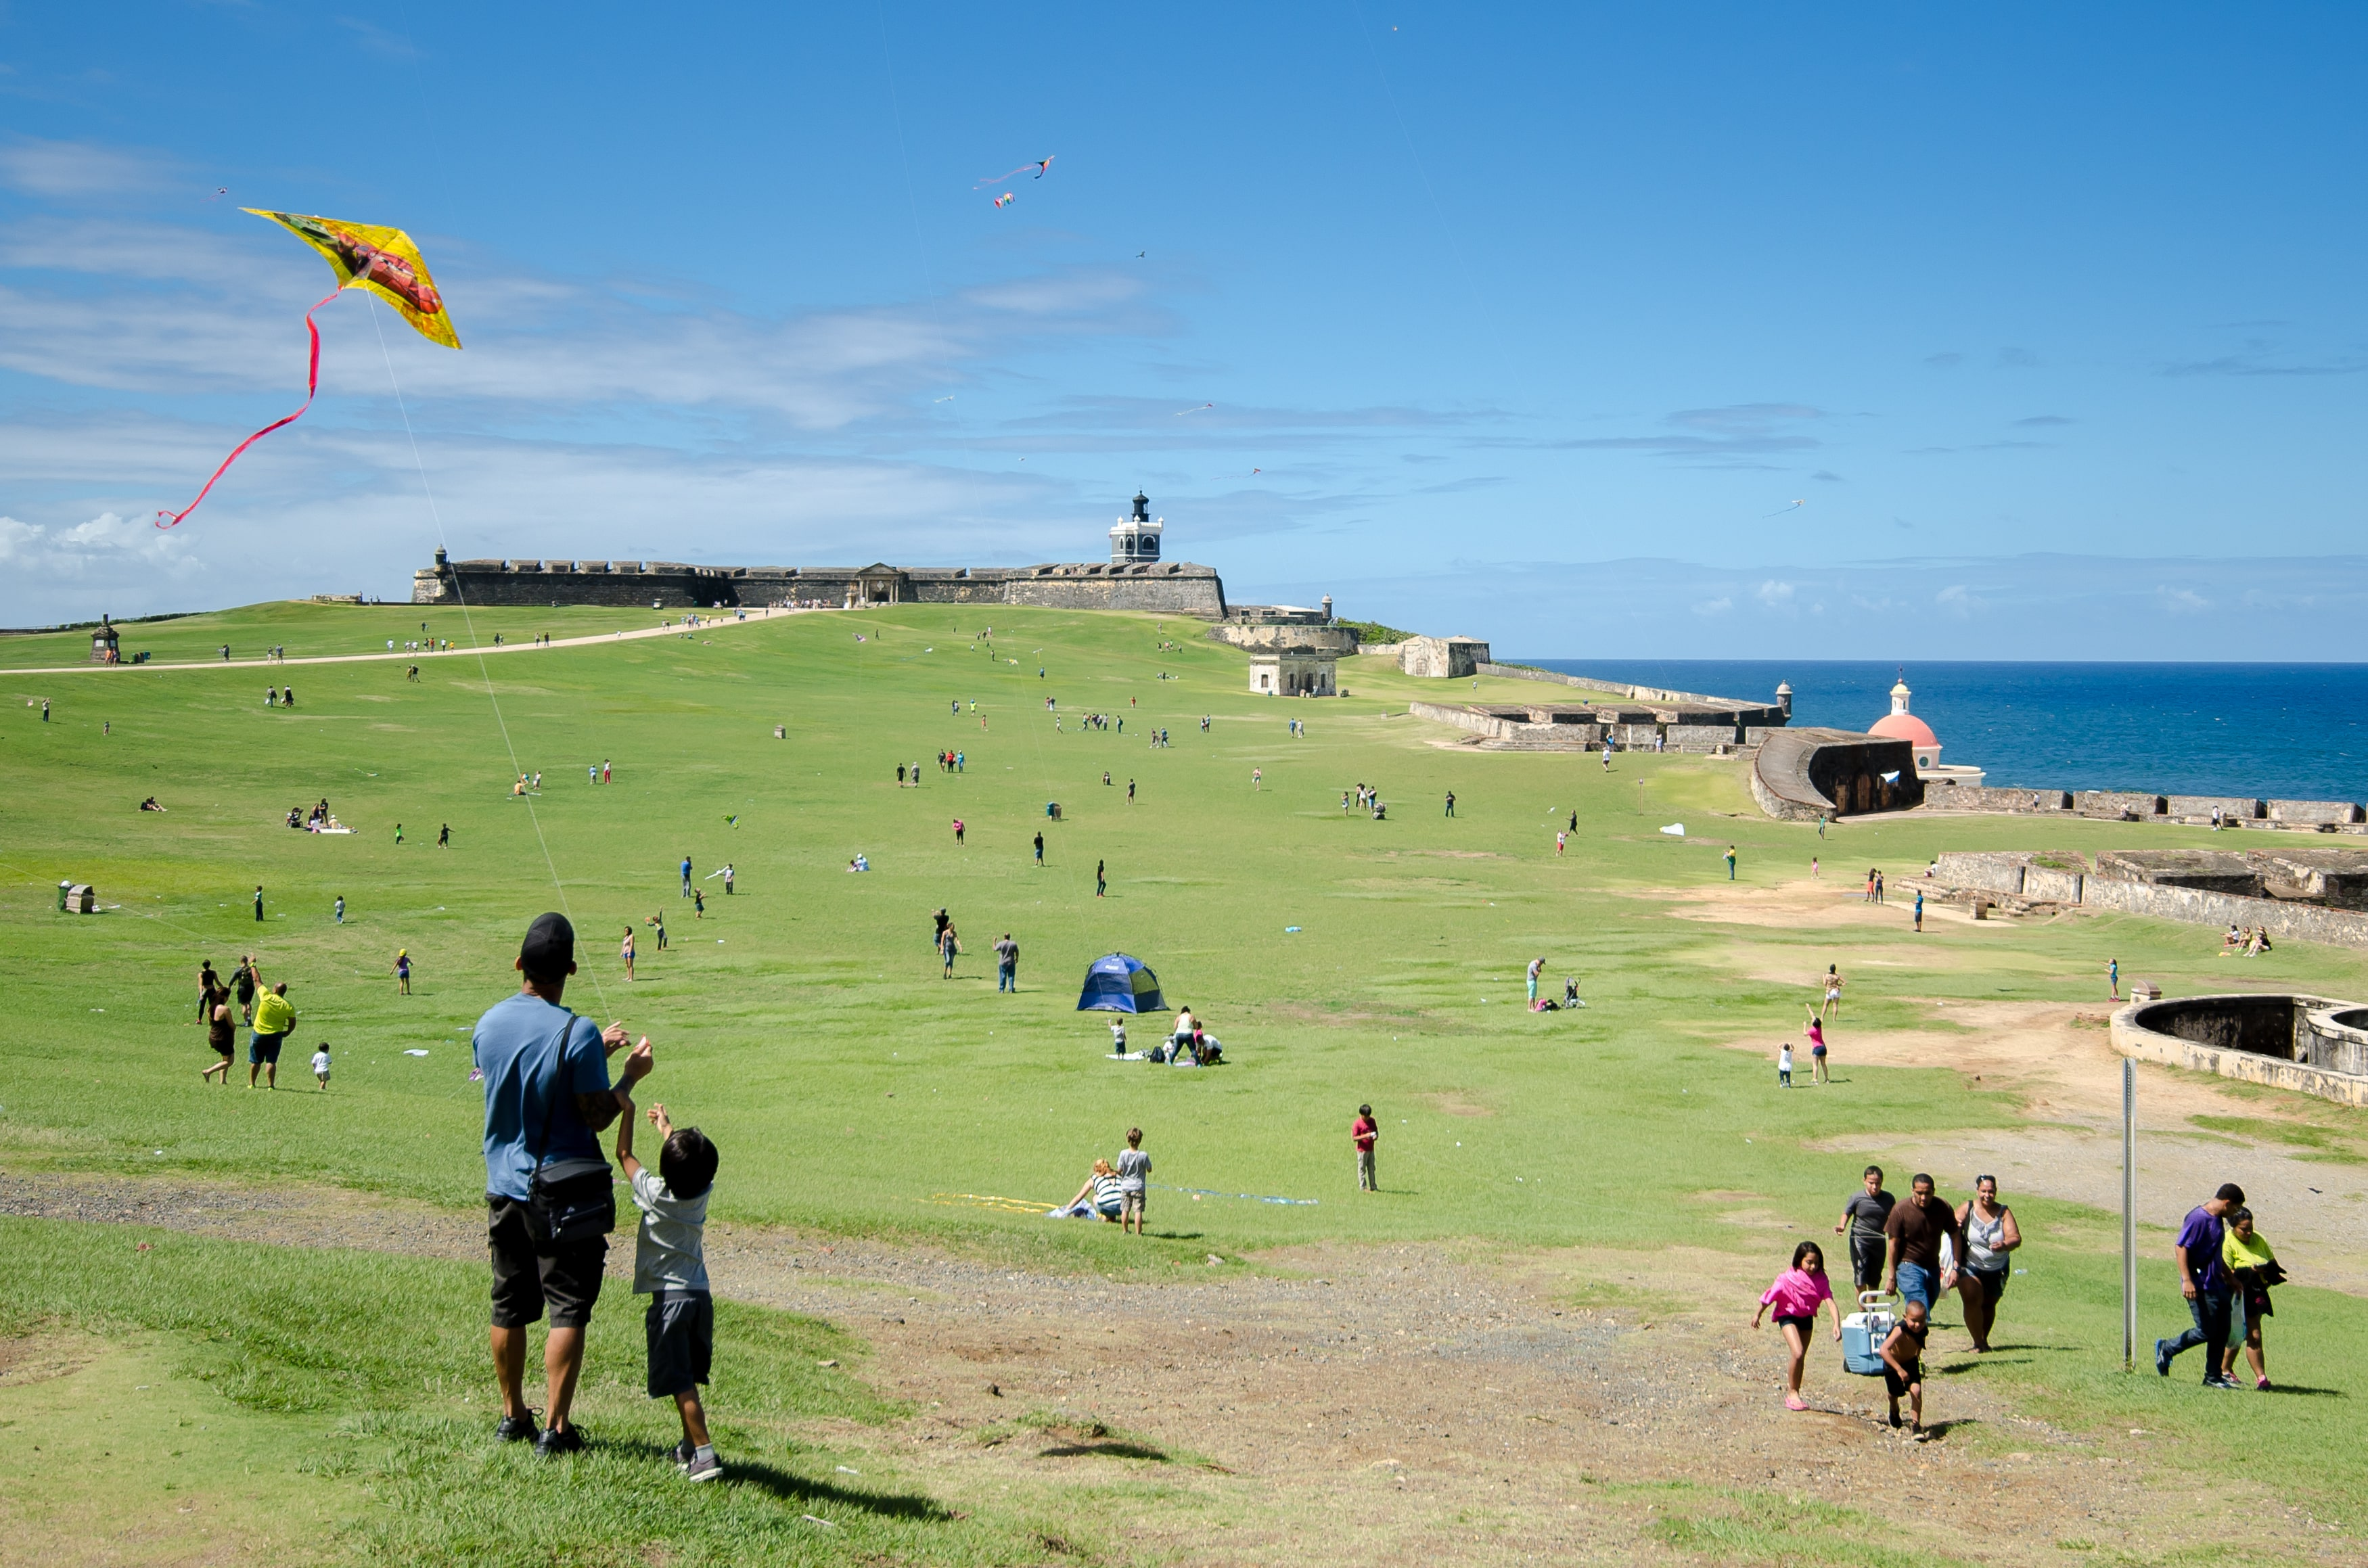 Knowing free things to do is important for planning a Puerto Rico family vacation